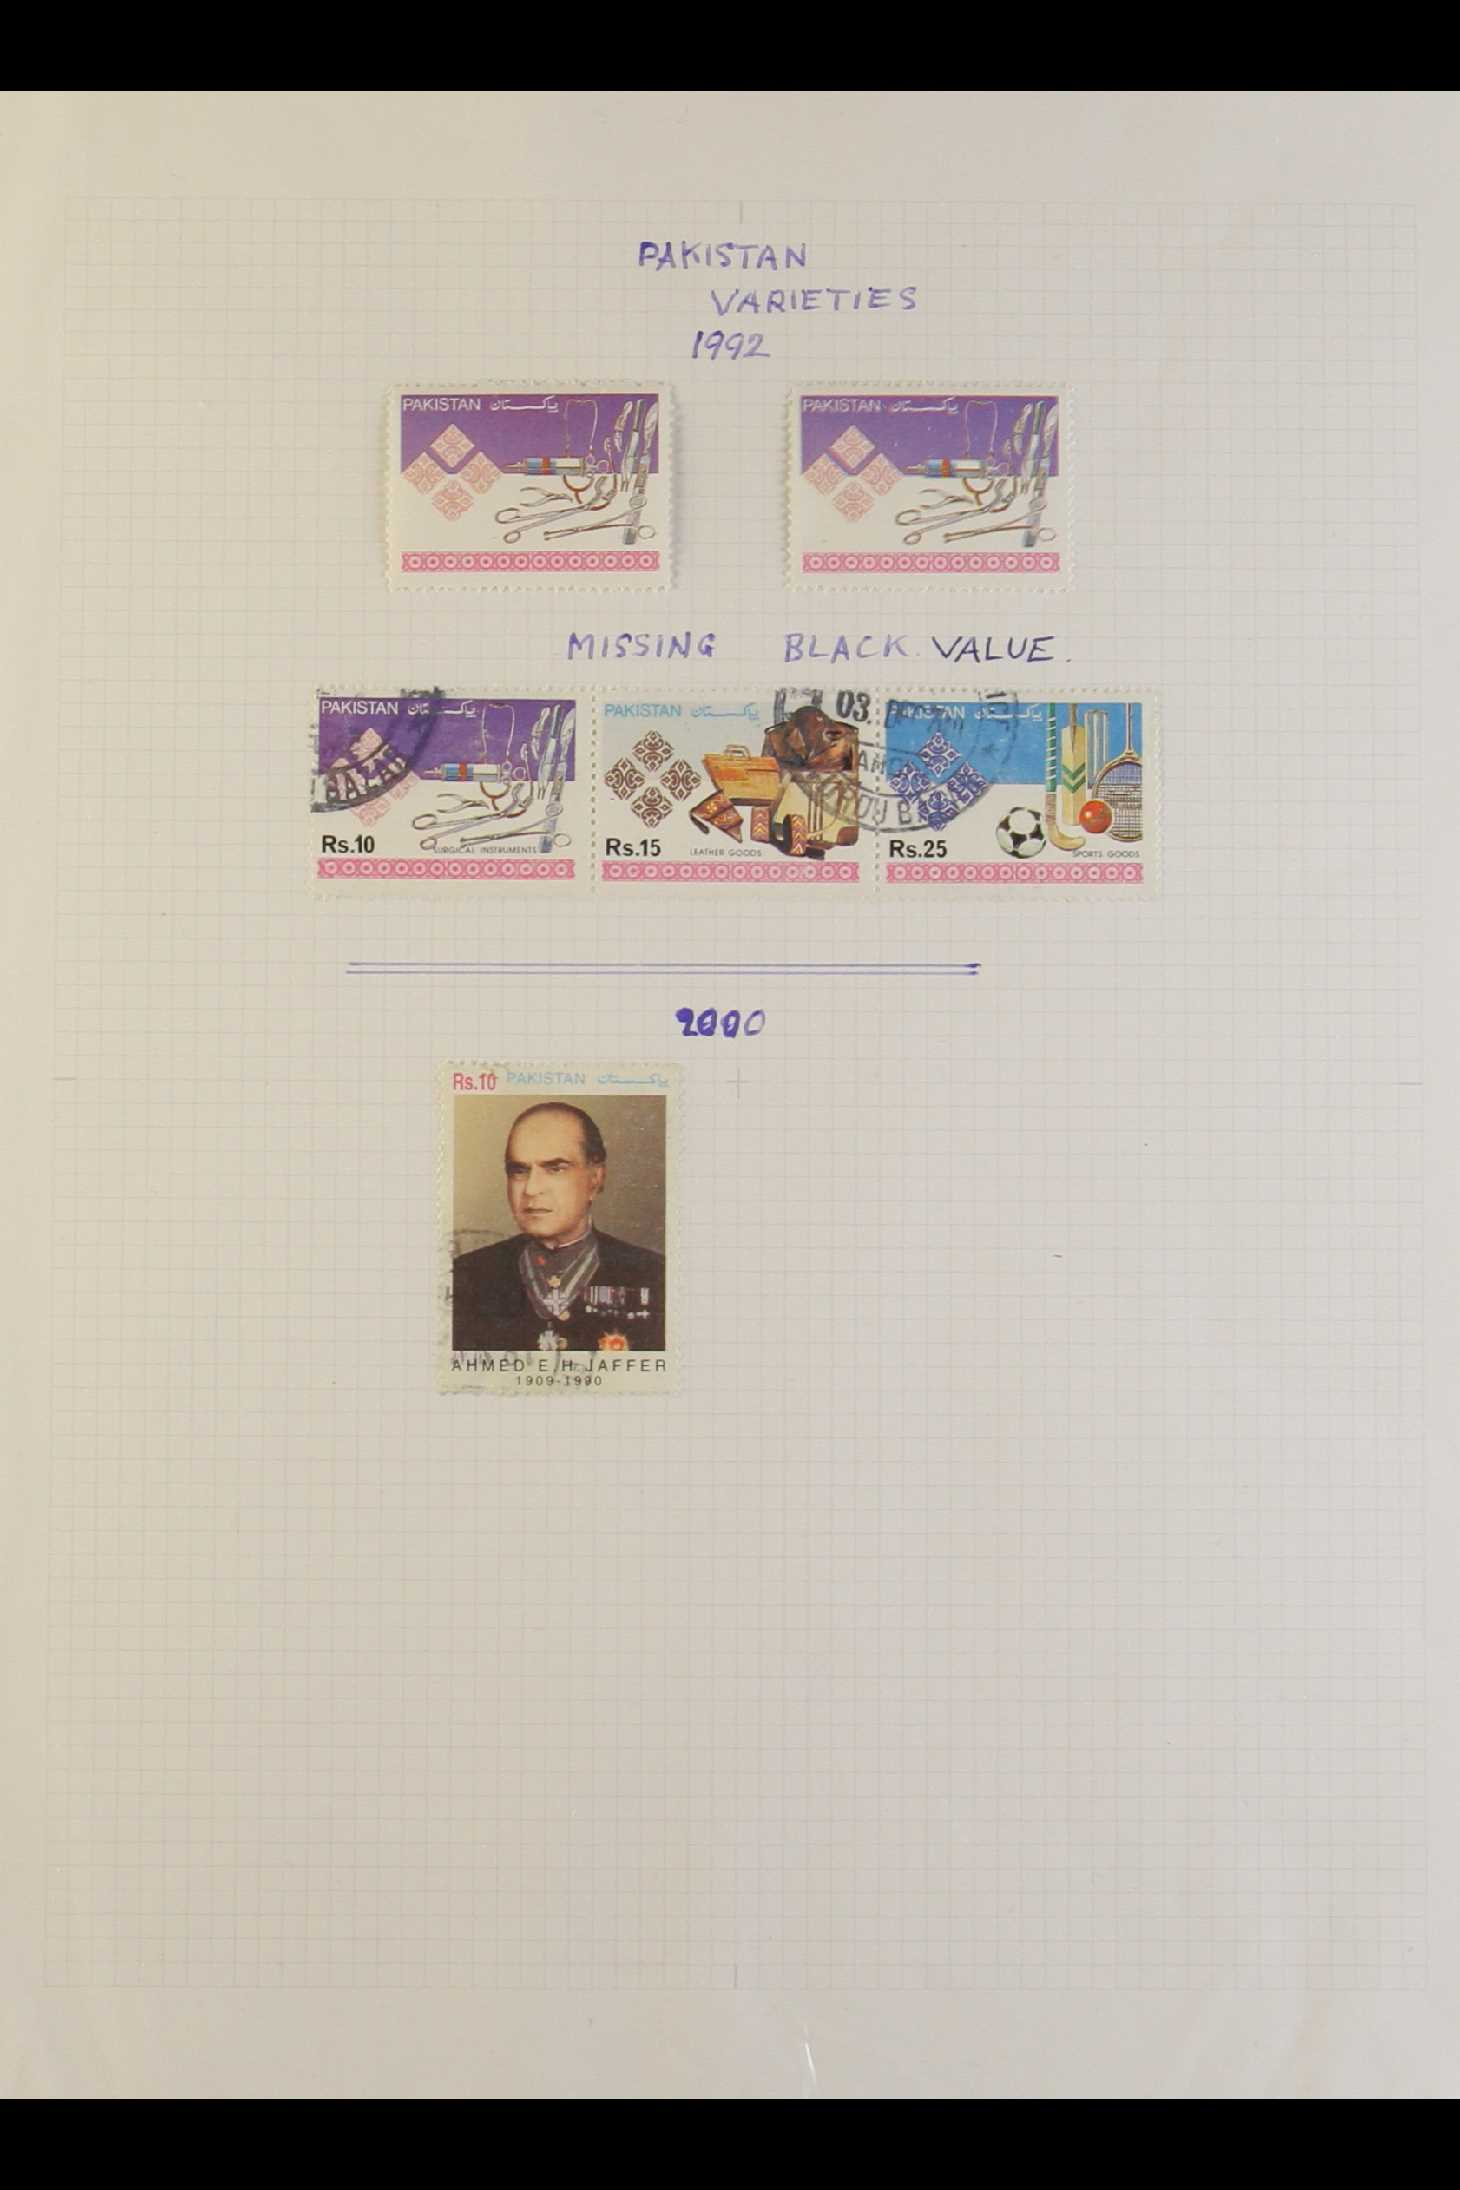 PAKISTAN 1960-2000 VARIETIES COLLECTION mint or nhm incl. 1960 Revolution Day 2a pink OMITTED, - Image 4 of 9